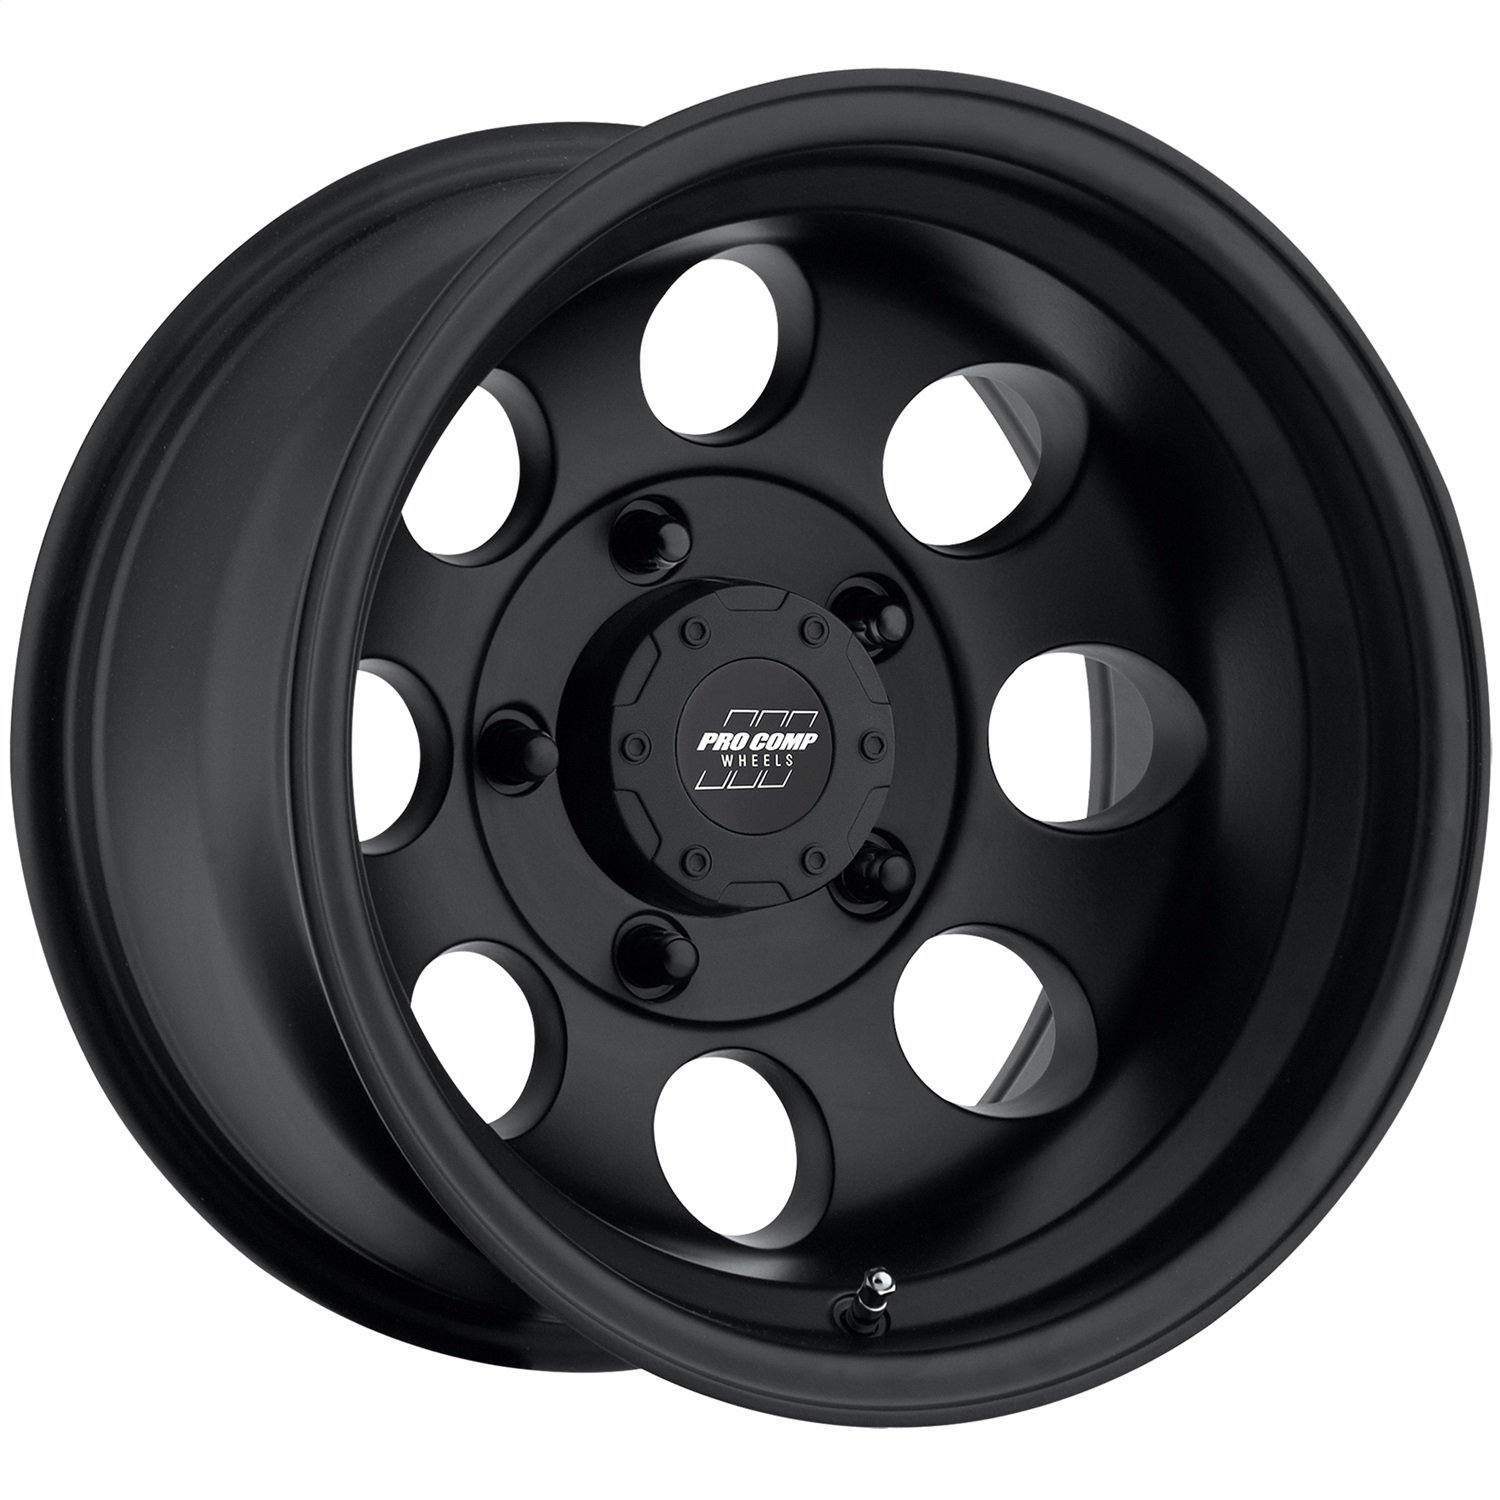 Pro Comp Alloys Series 69 Wheel with Flat Black Finish (15x10'/5x139.7mm) Pro Comp Wheels PXA7069-5185